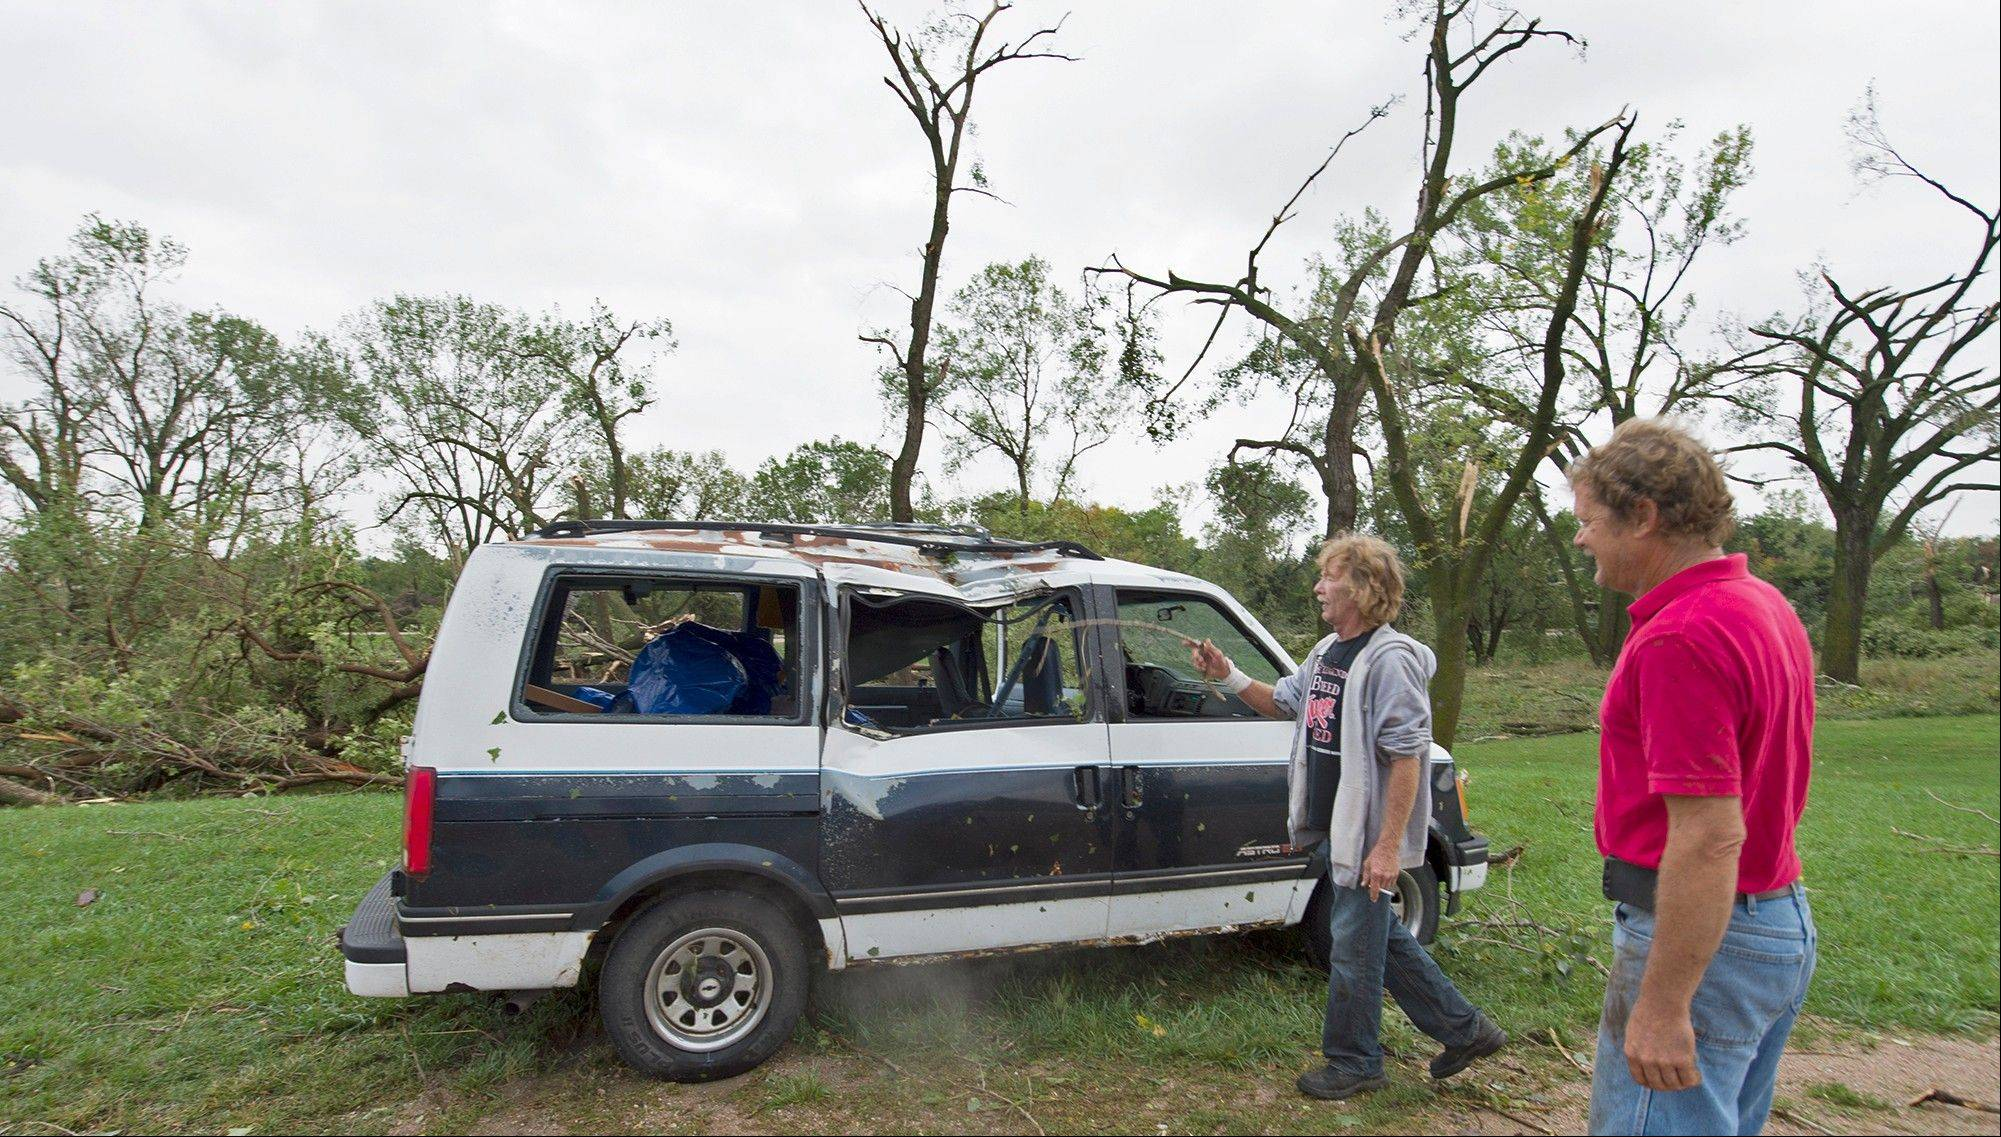 Jim Stoddard, left, and his brother-in-law Todd Harlan check out Jim's van on Friday, Oct. 4, 2013 in Hickman, Neb. Powerful storms crawled into the Midwest on Friday, dumping heavy snow in South Dakota, spawning a tornado in Nebraska and threatening dangerous thunderstorms from Oklahoma to Wisconsin.